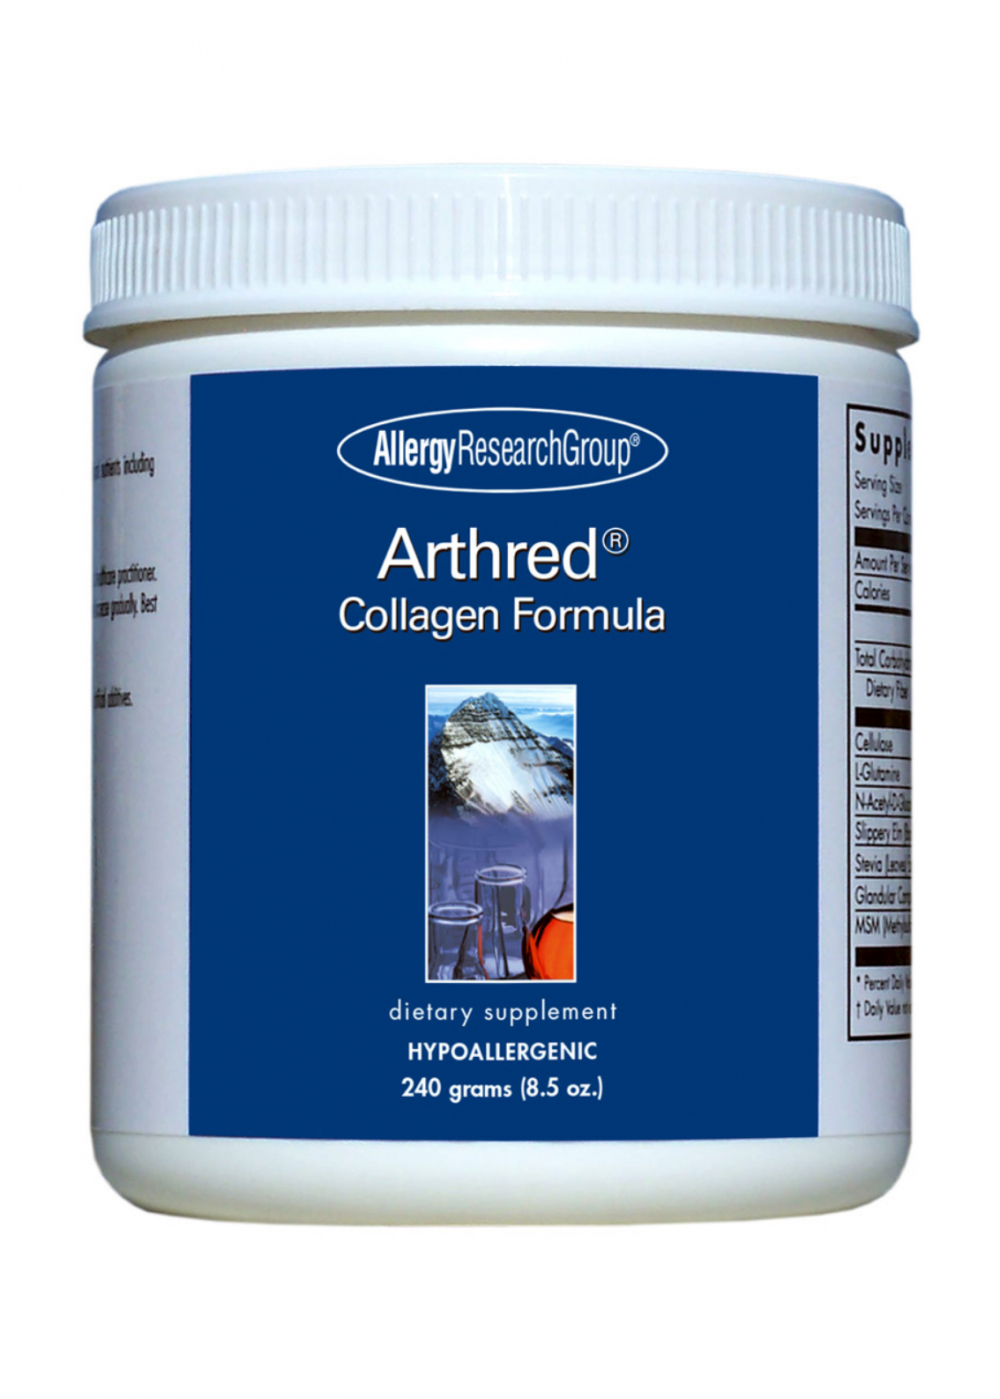 Allergy Research Group Arthred® Collagen Formula (Hydrolysiertes Kollagen) 900g Pulver